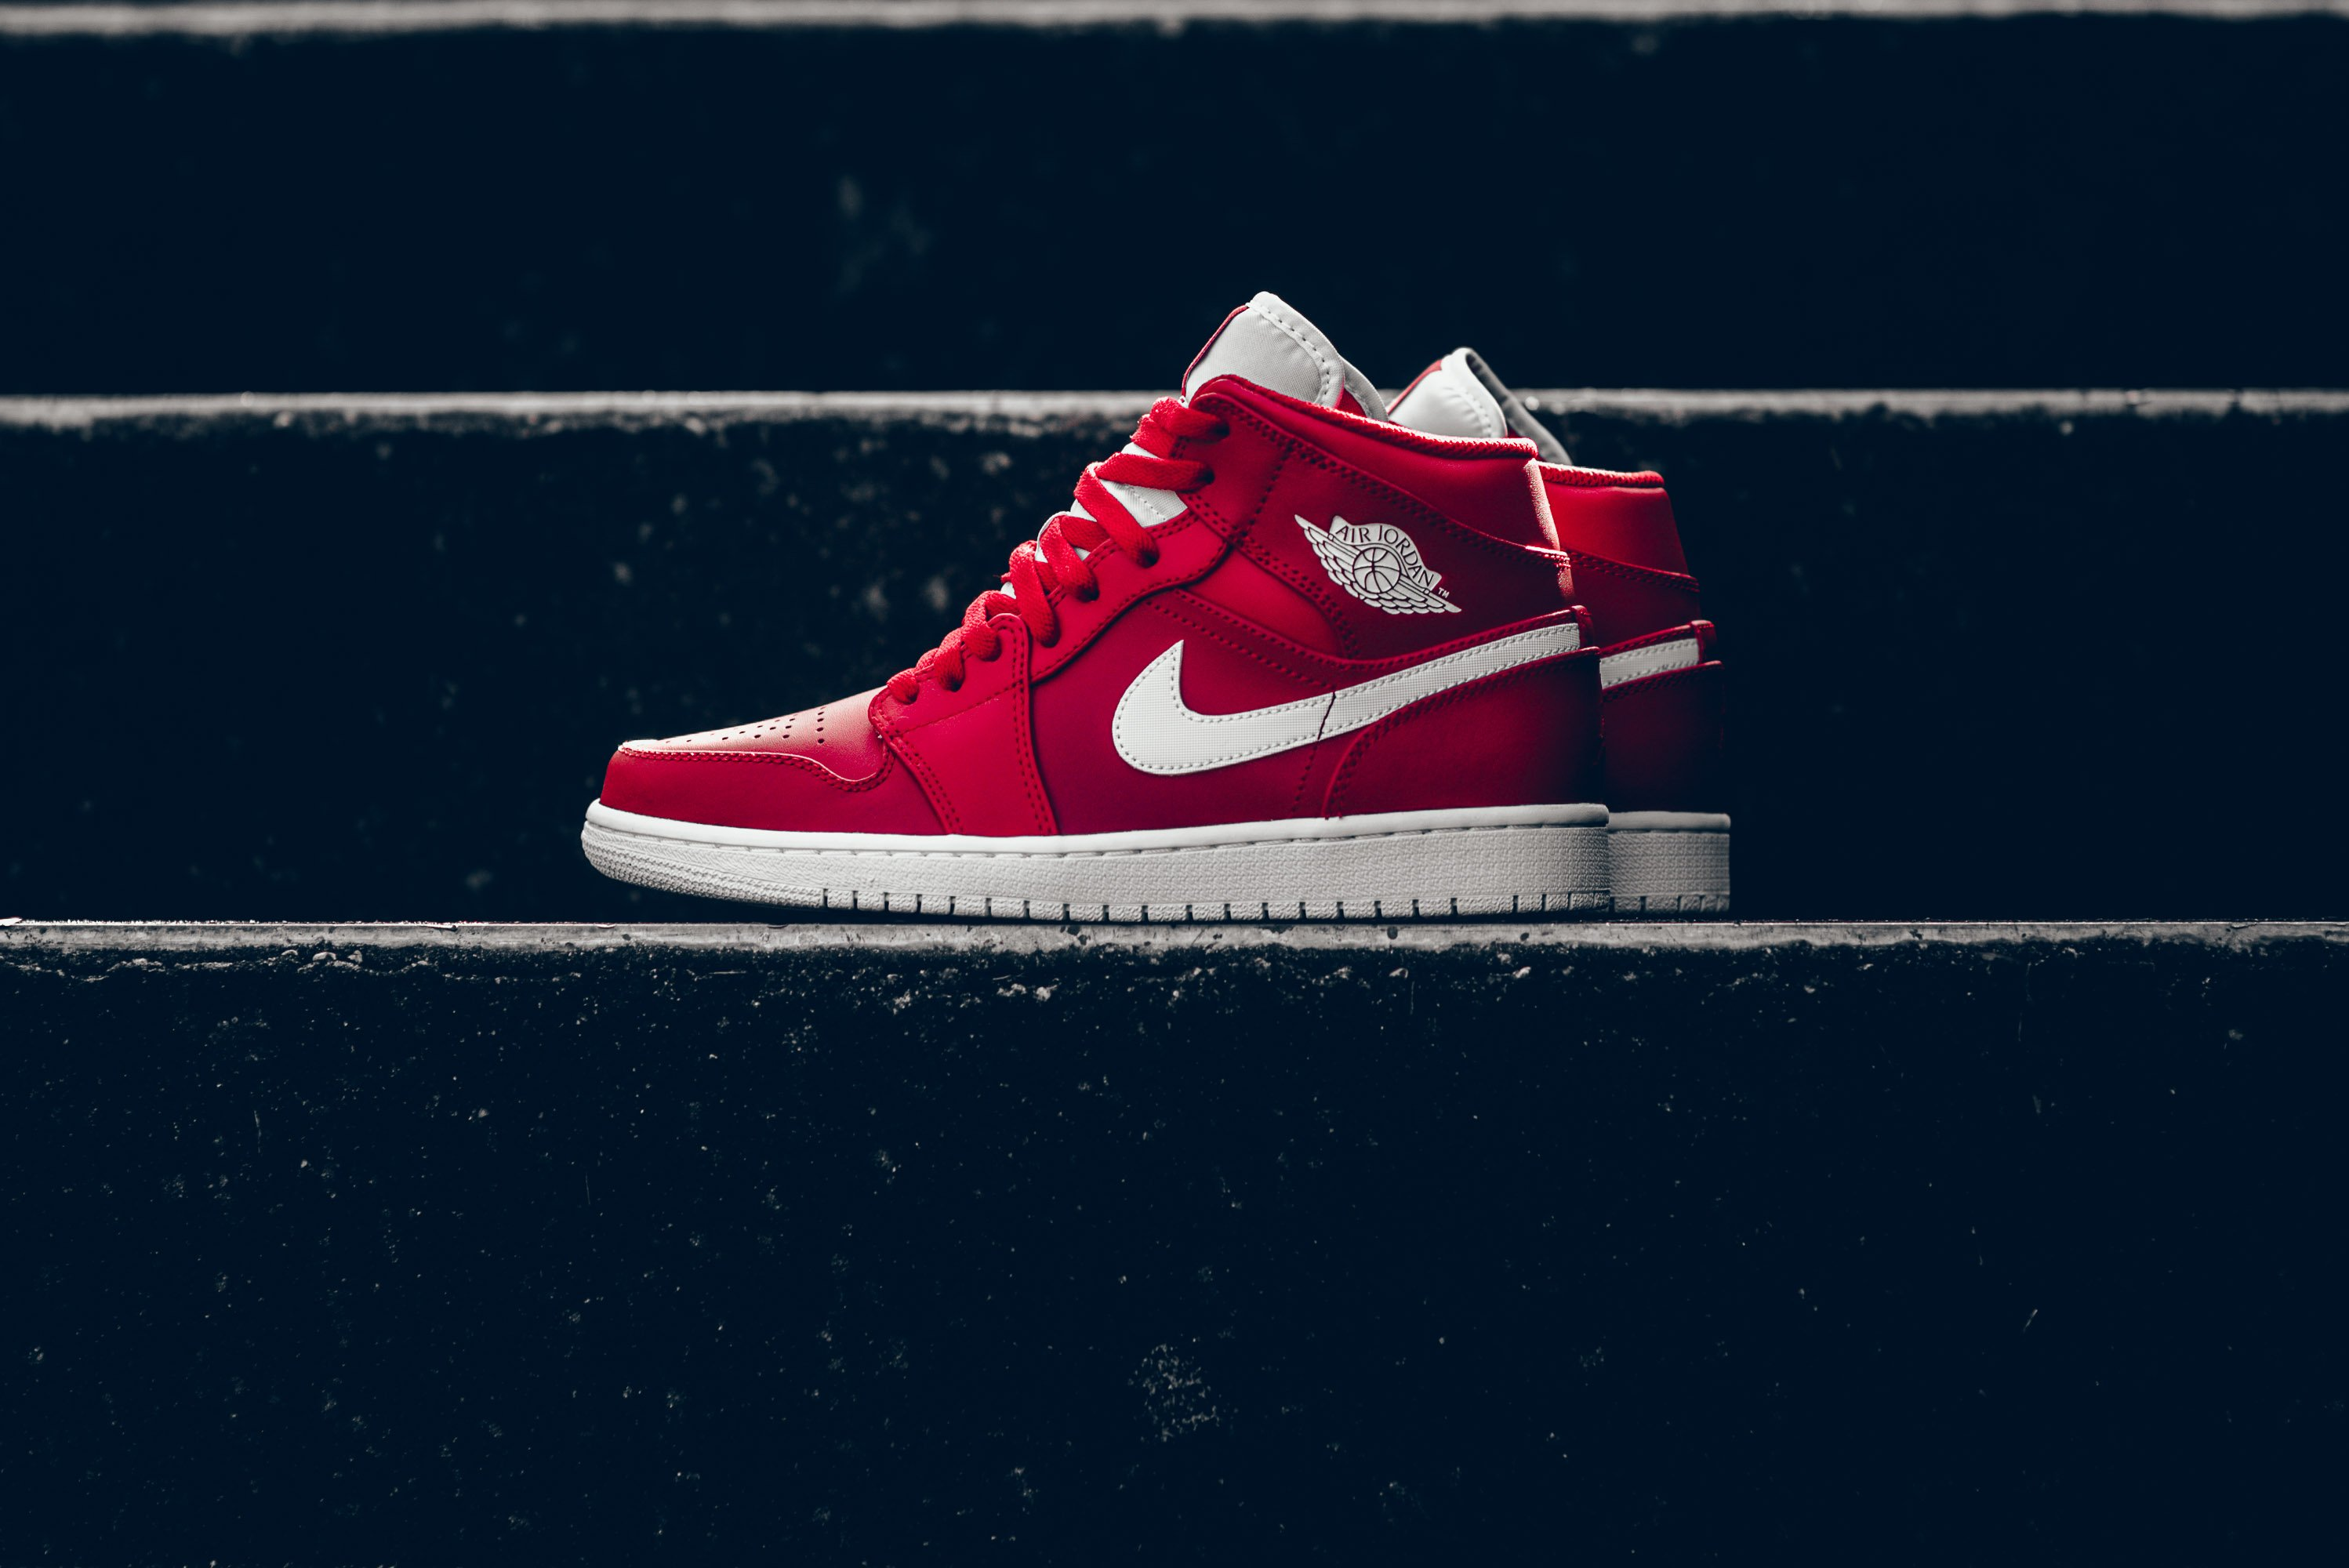 new product 87d4b f5069 Check Out This Air Jordan 1 Mid In Gym Red • KicksOnFire.com